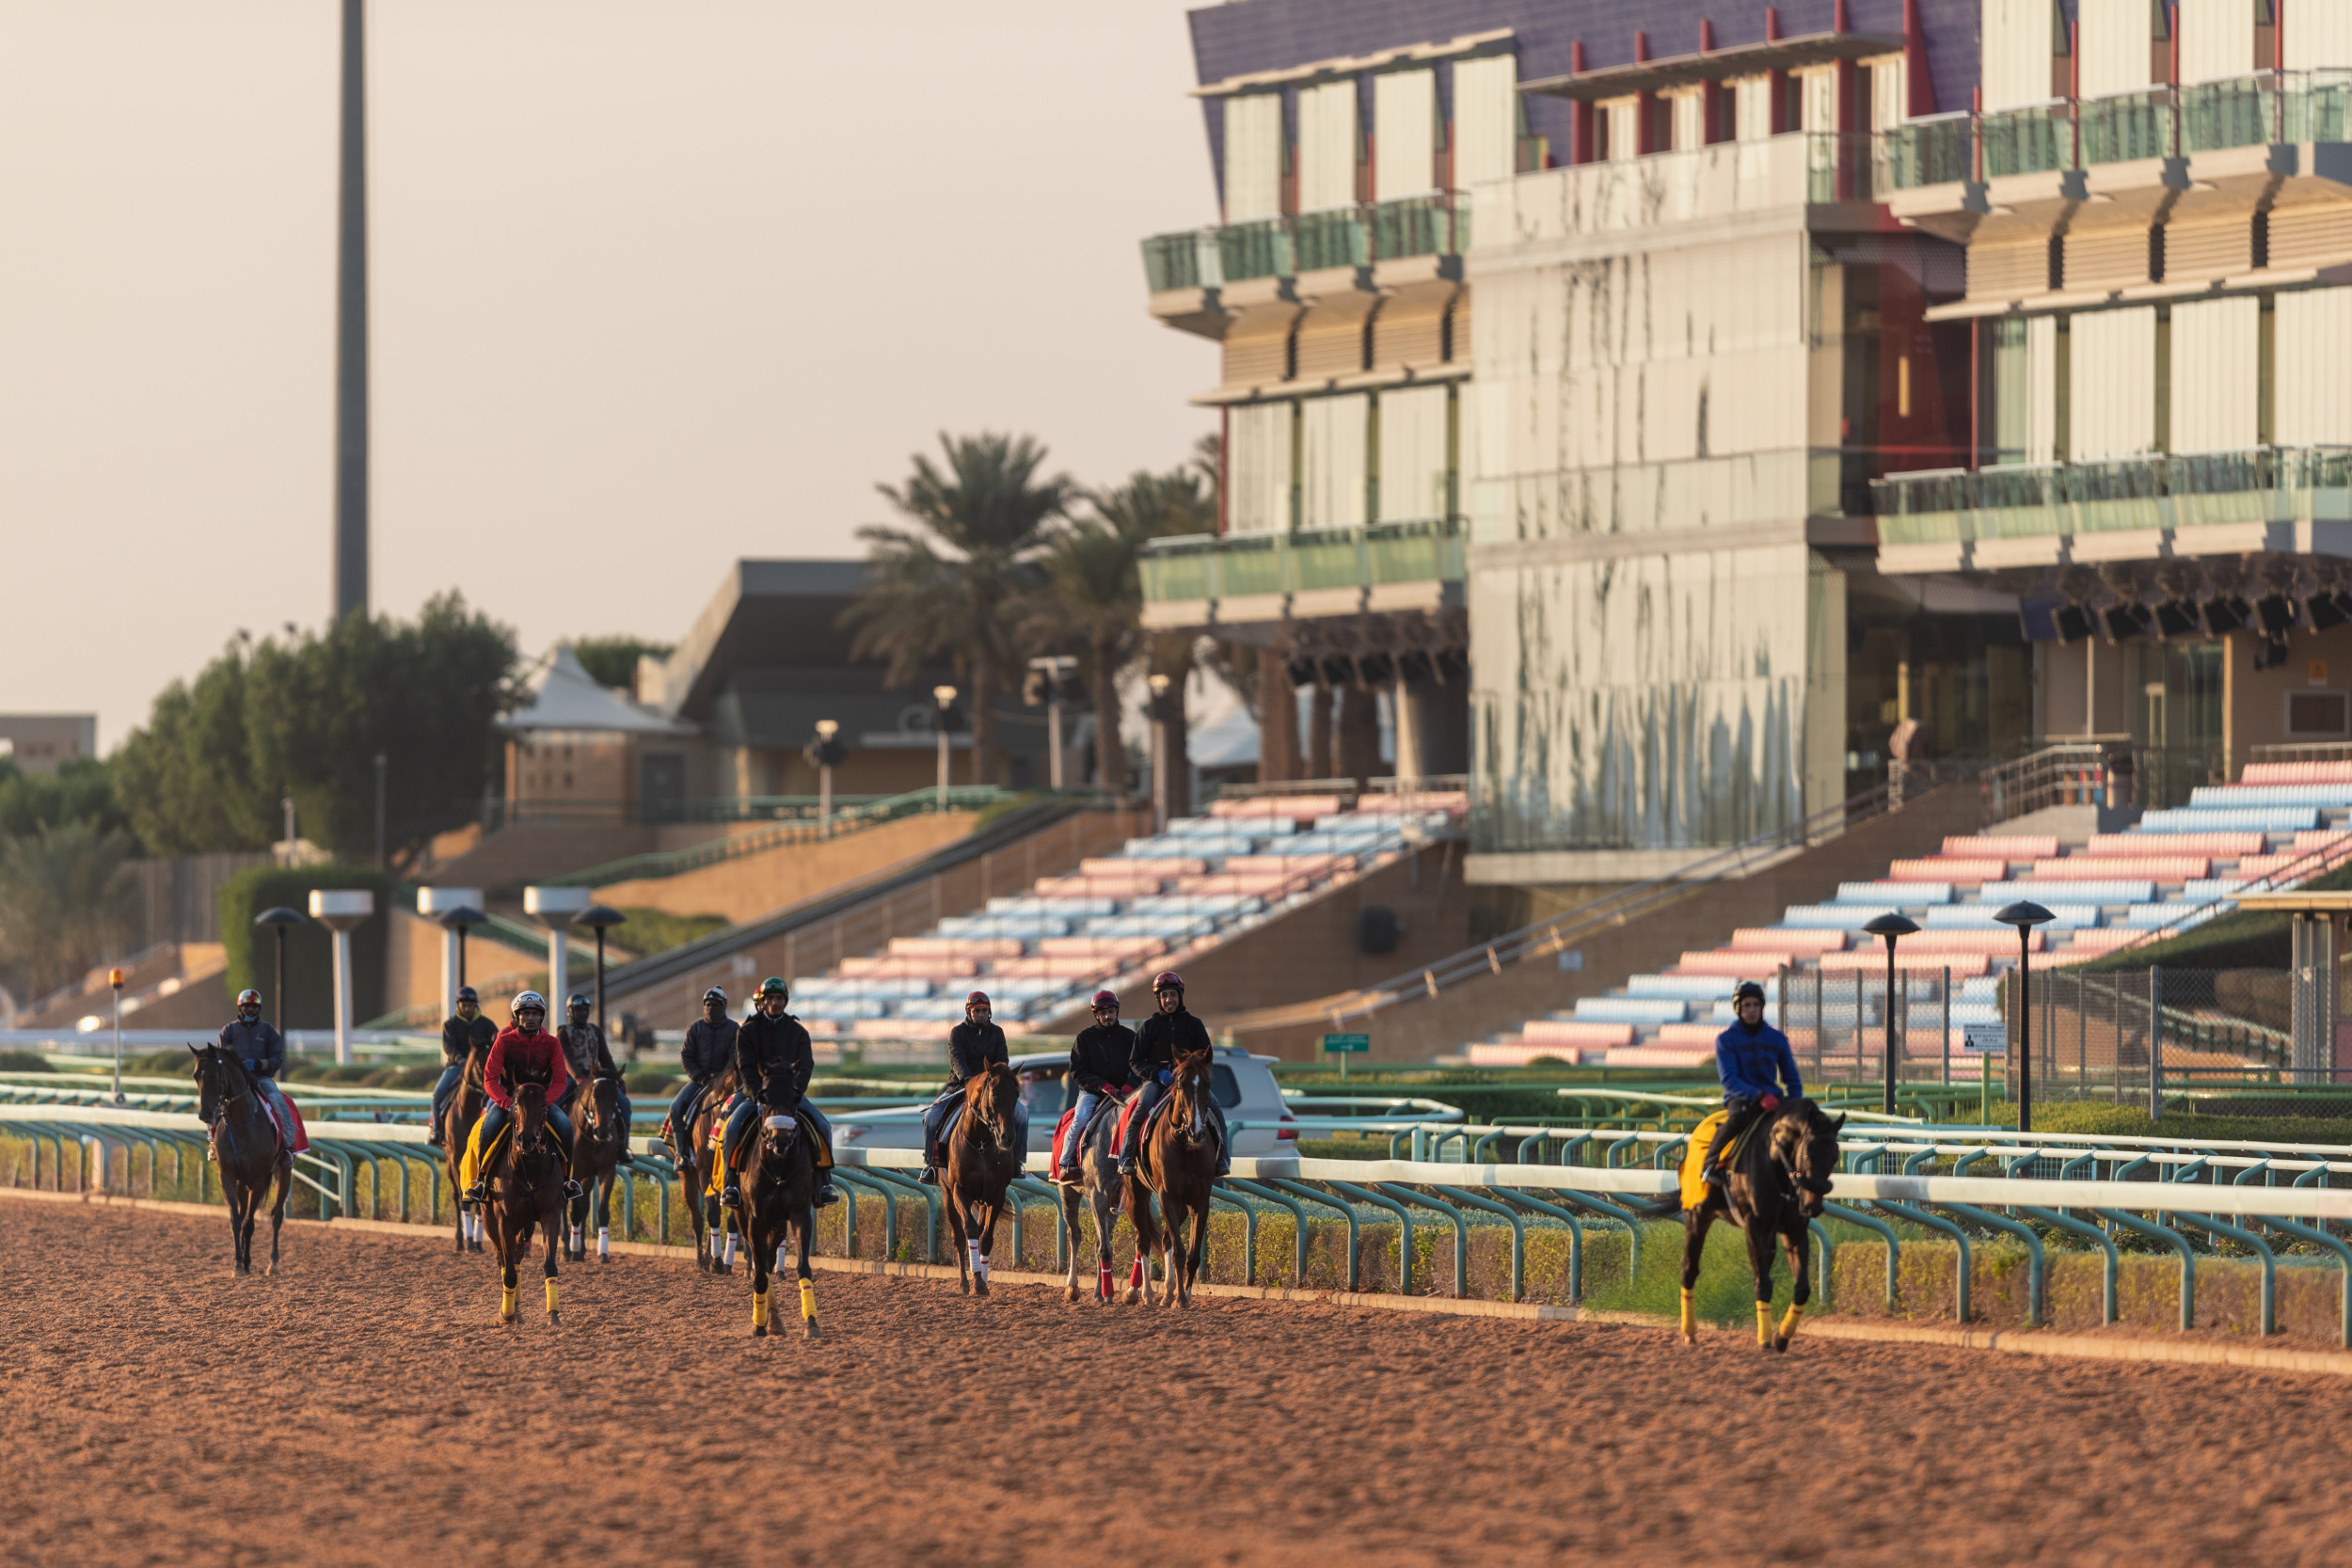 Saudi Cup: All you need to know about horse racing's richest event on Saturday